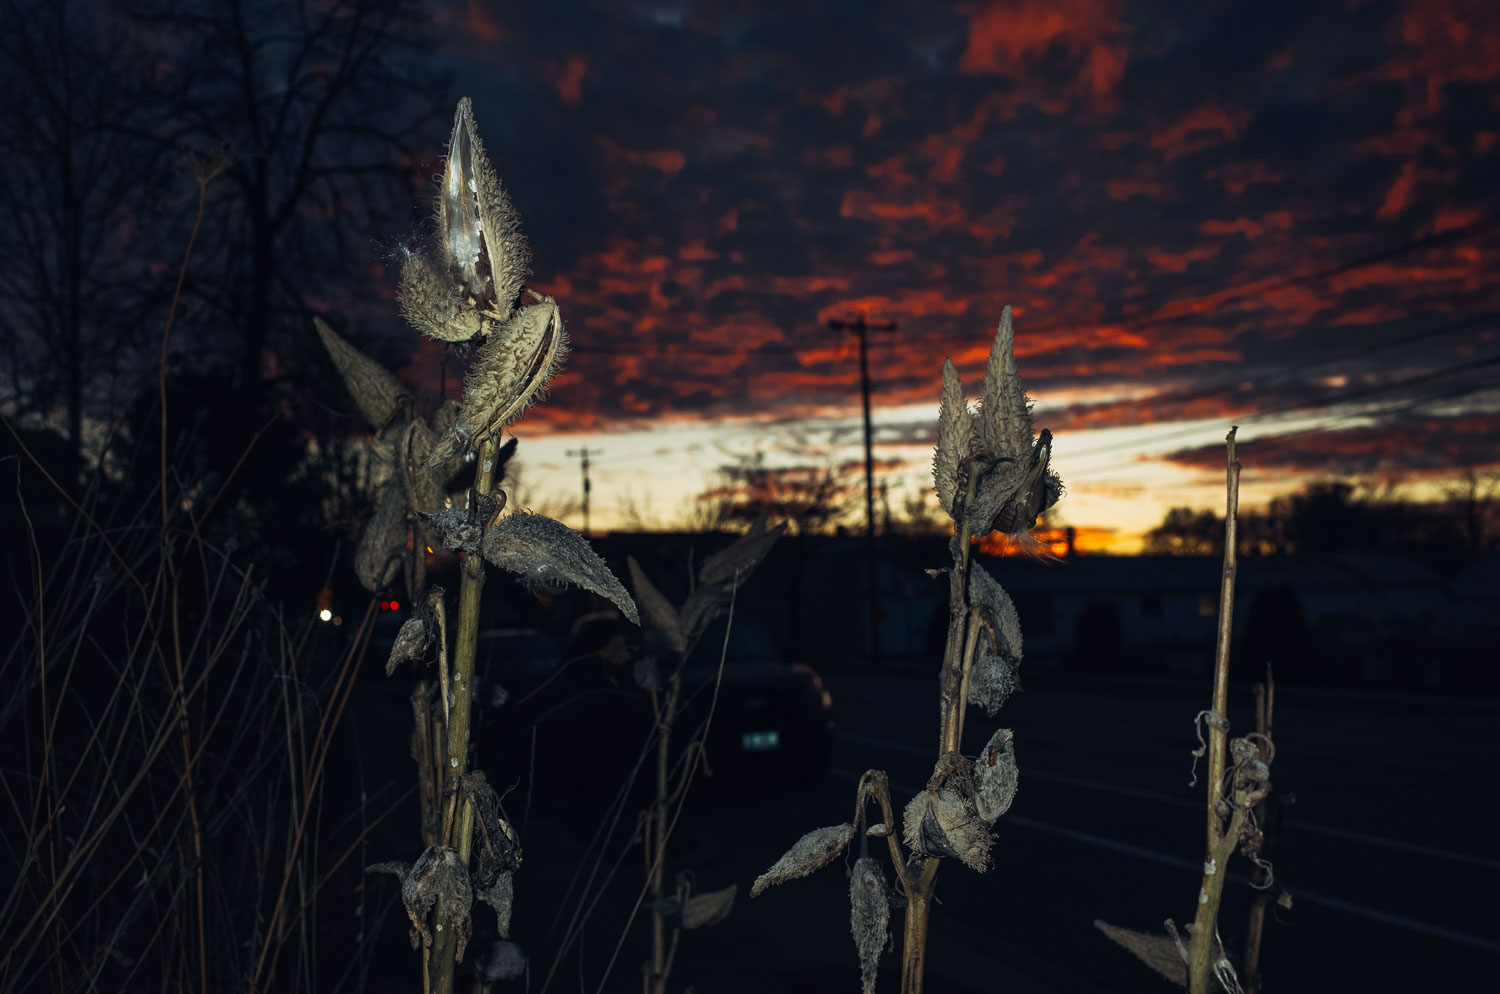 milkweed in foreground with sunset in background on Winnebago street in Madison Wisconsin